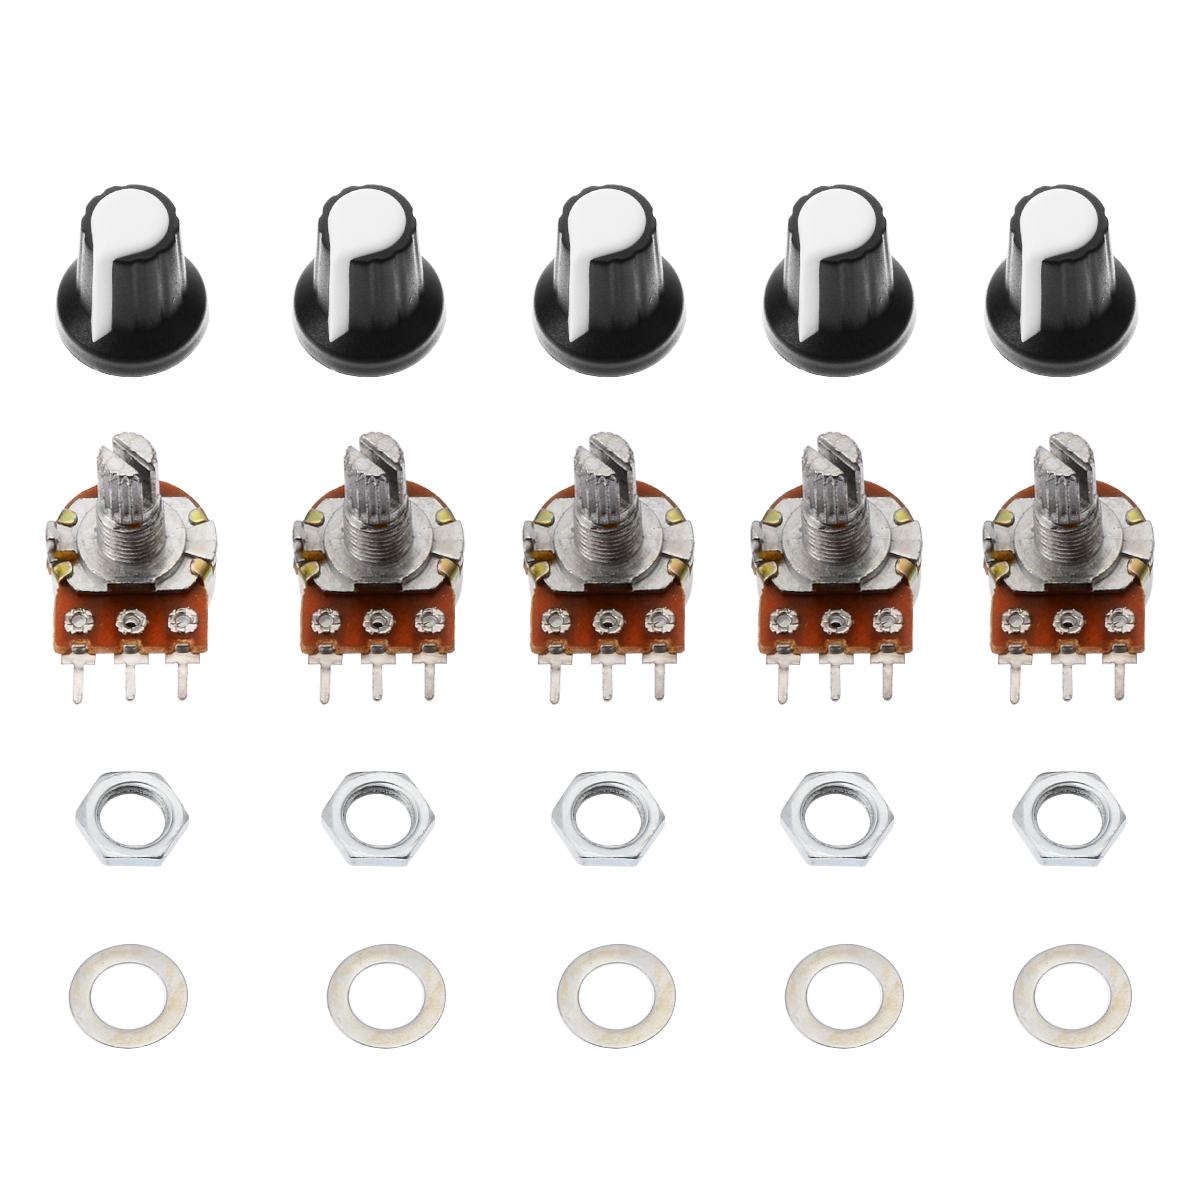 5pcs/set Mini Potentiometer 10K OHM 3 Pins Linear Mono Stereo Pot Rotary 15mm Resistor Potentiometer with Knobs